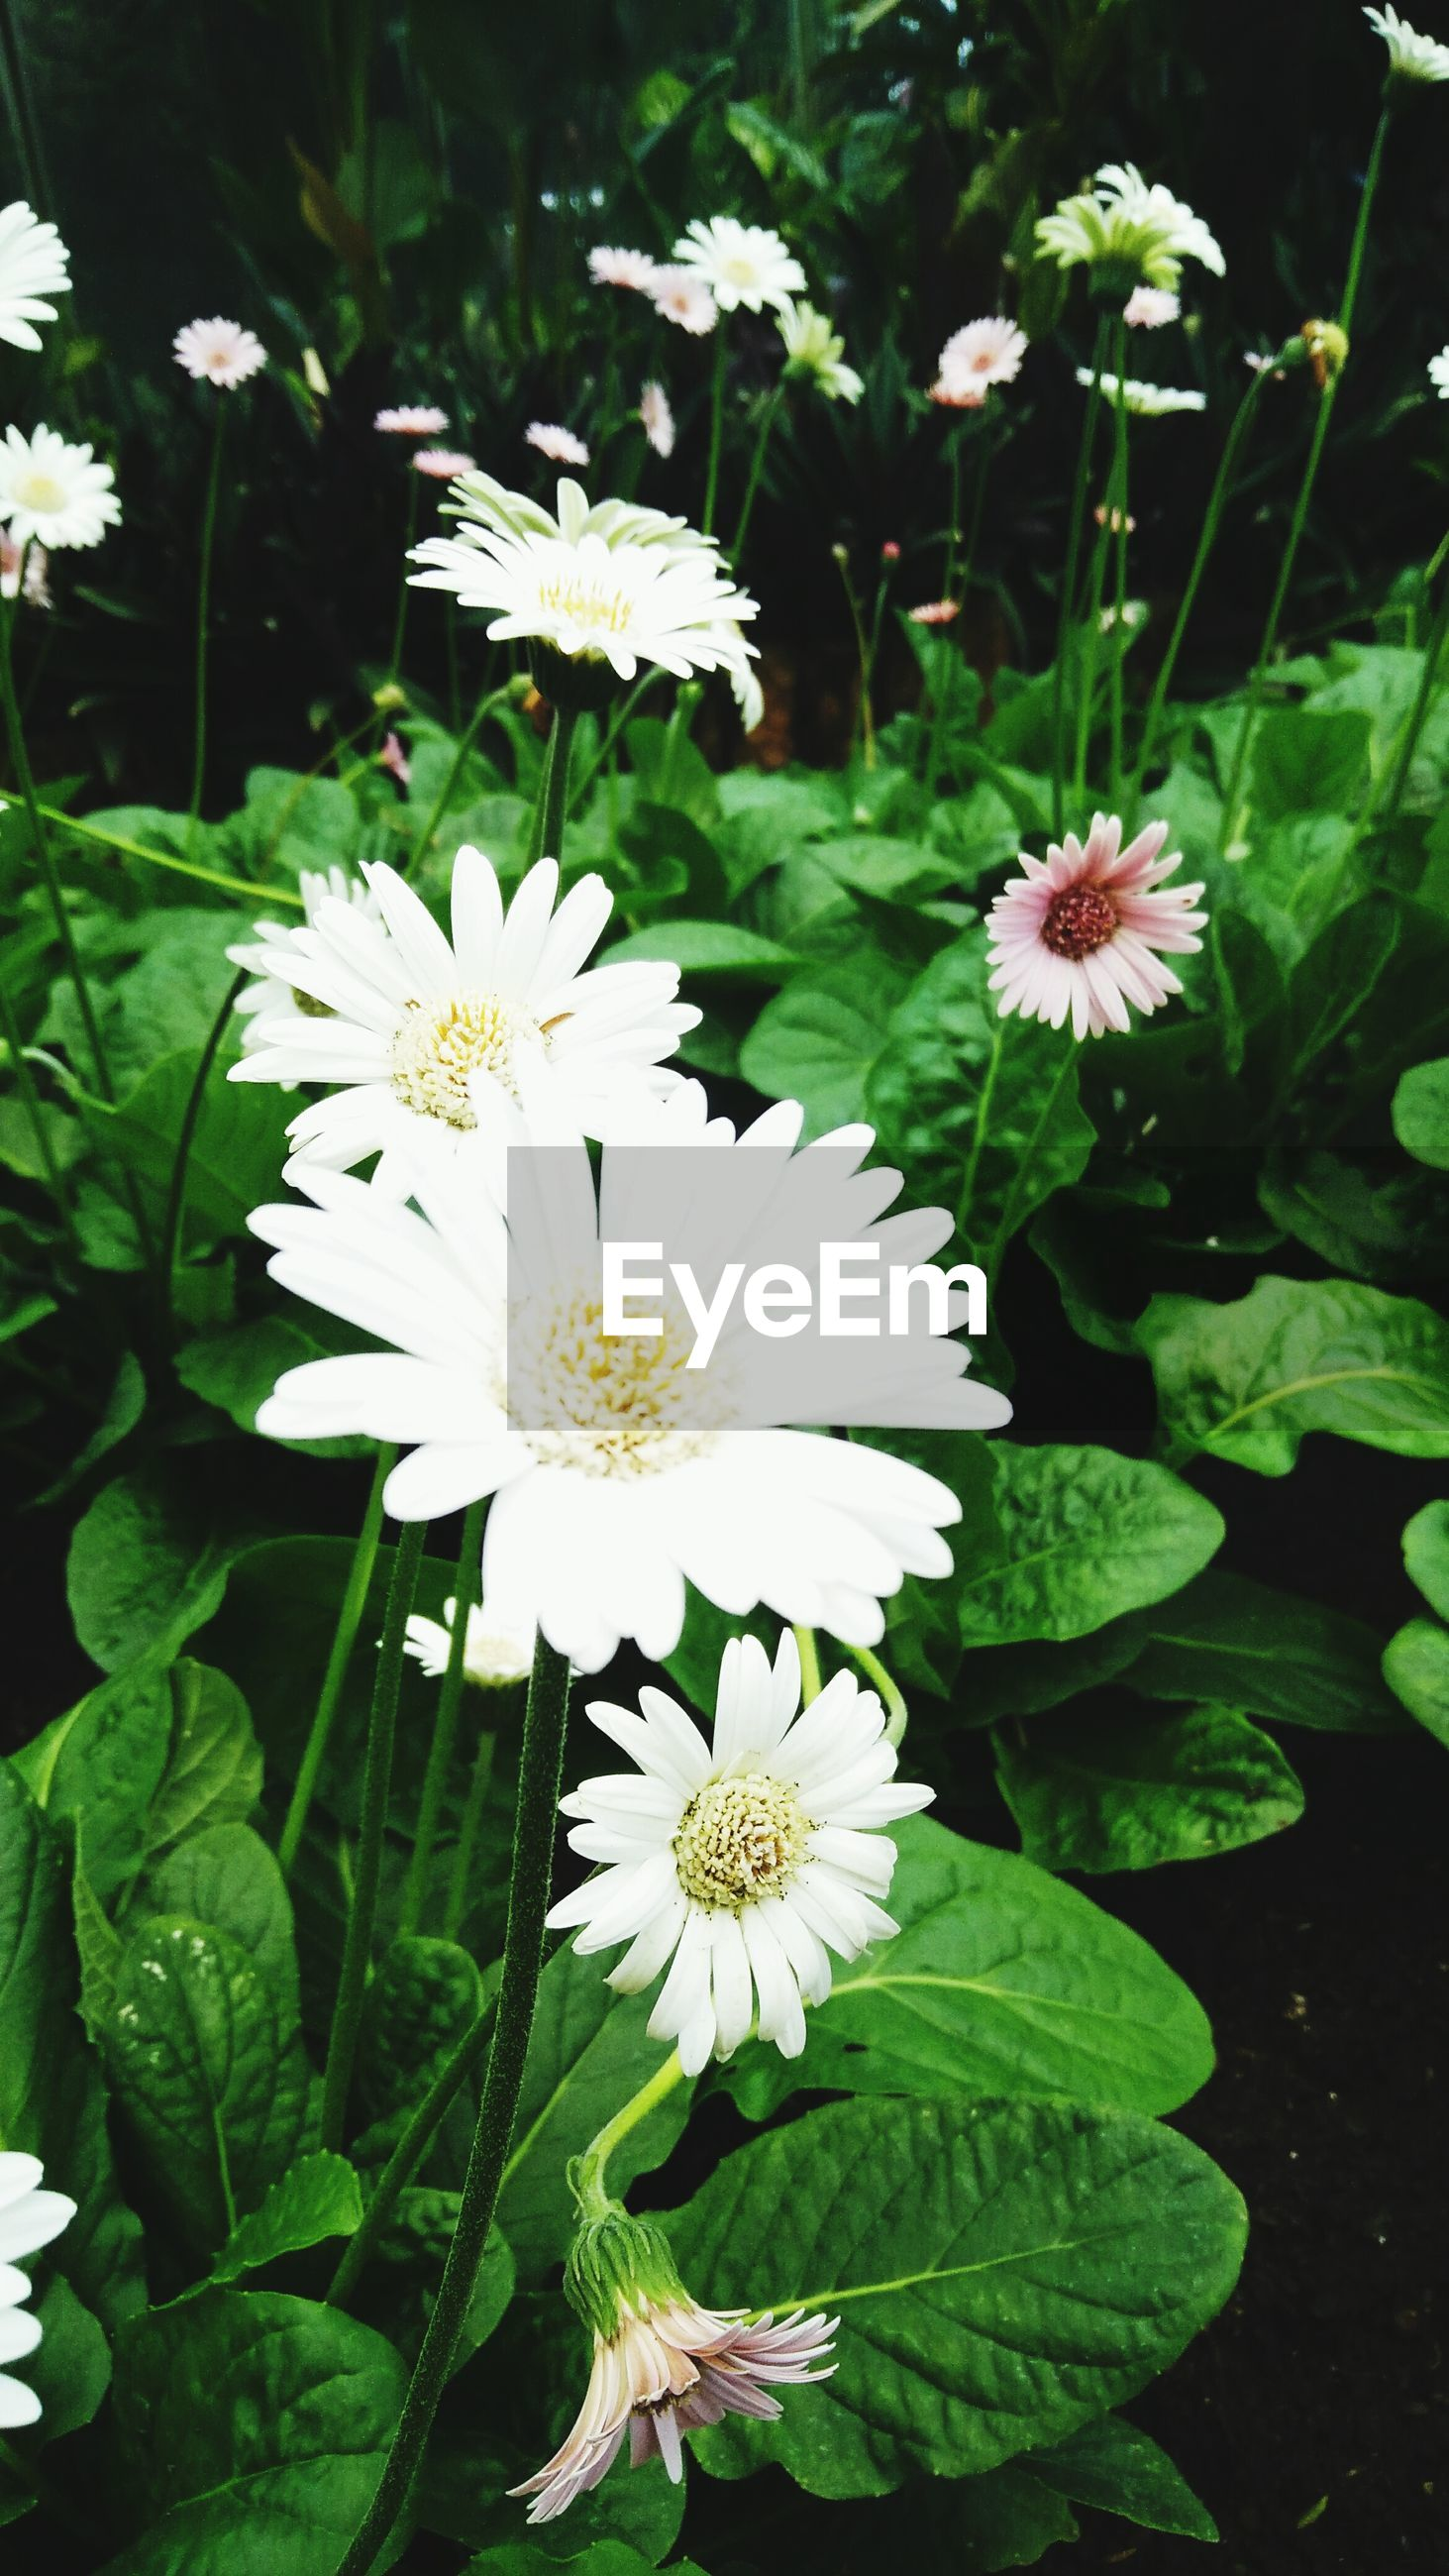 flower, freshness, white color, petal, fragility, growth, flower head, leaf, beauty in nature, blooming, plant, nature, green color, high angle view, white, pollen, close-up, in bloom, blossom, focus on foreground